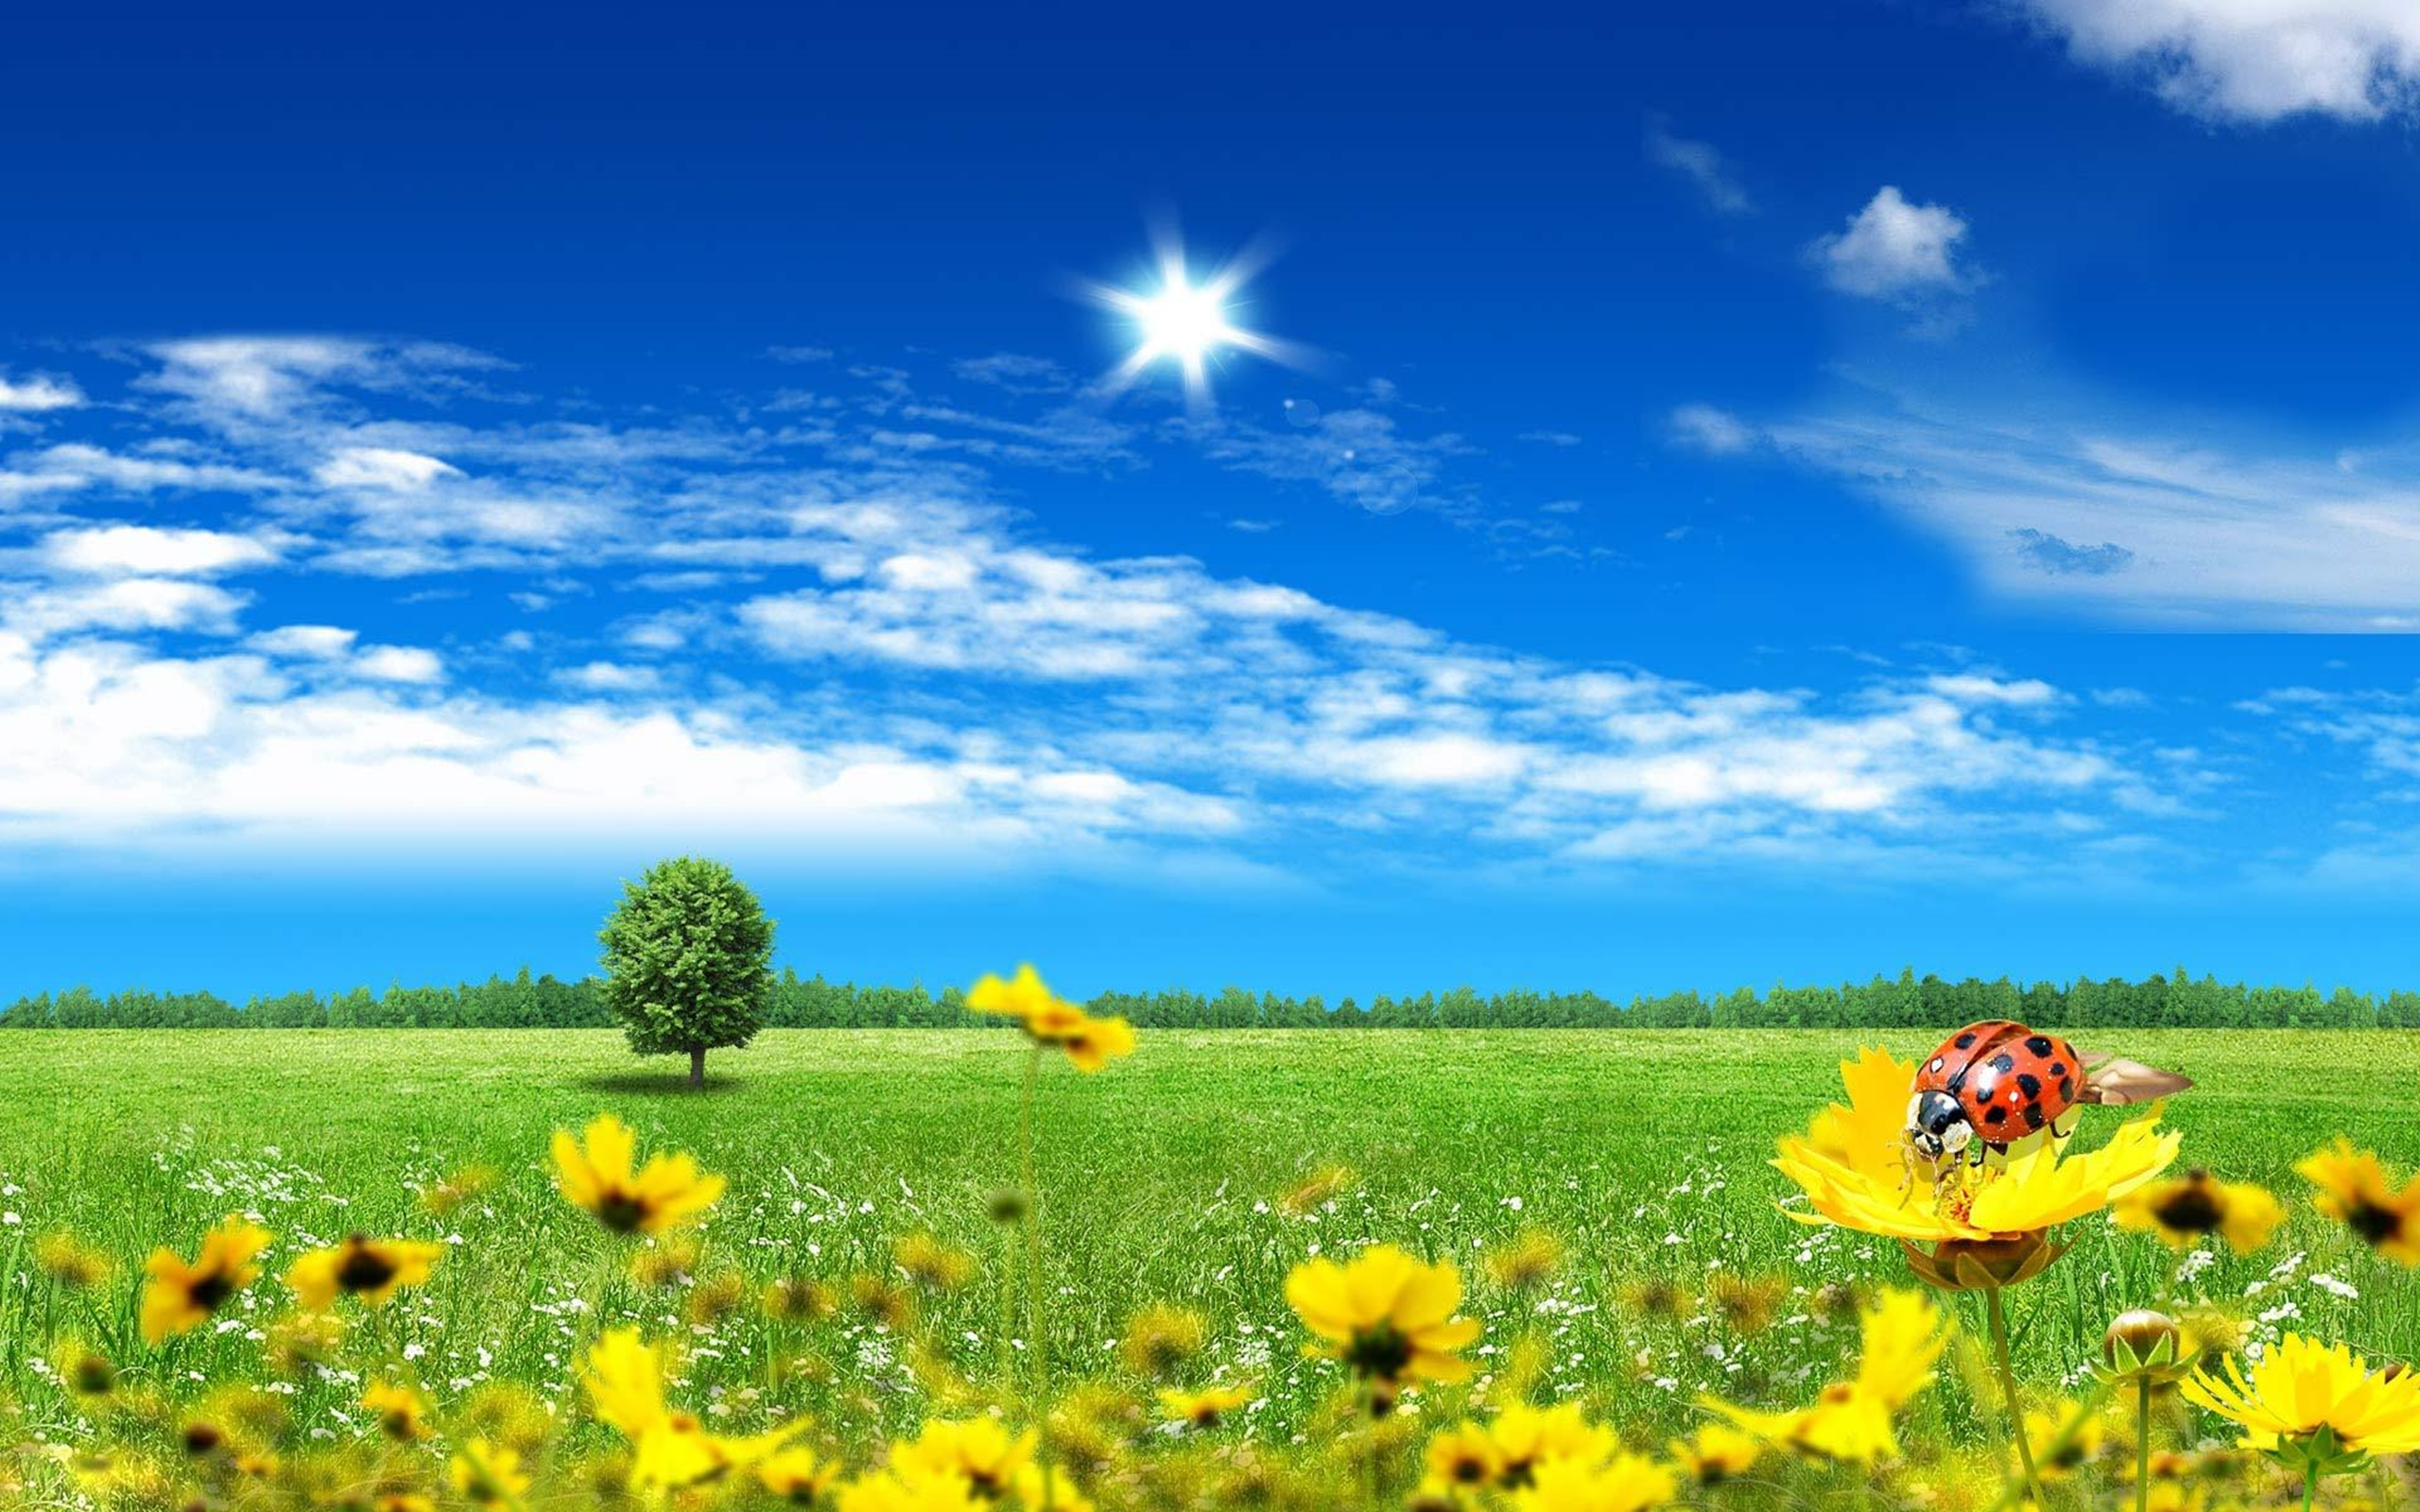 Windows 7 3d Desktop Wallpapers Free Download Summer Day Artistic Wallpaper 2560x1600 Wallpapers13 Com